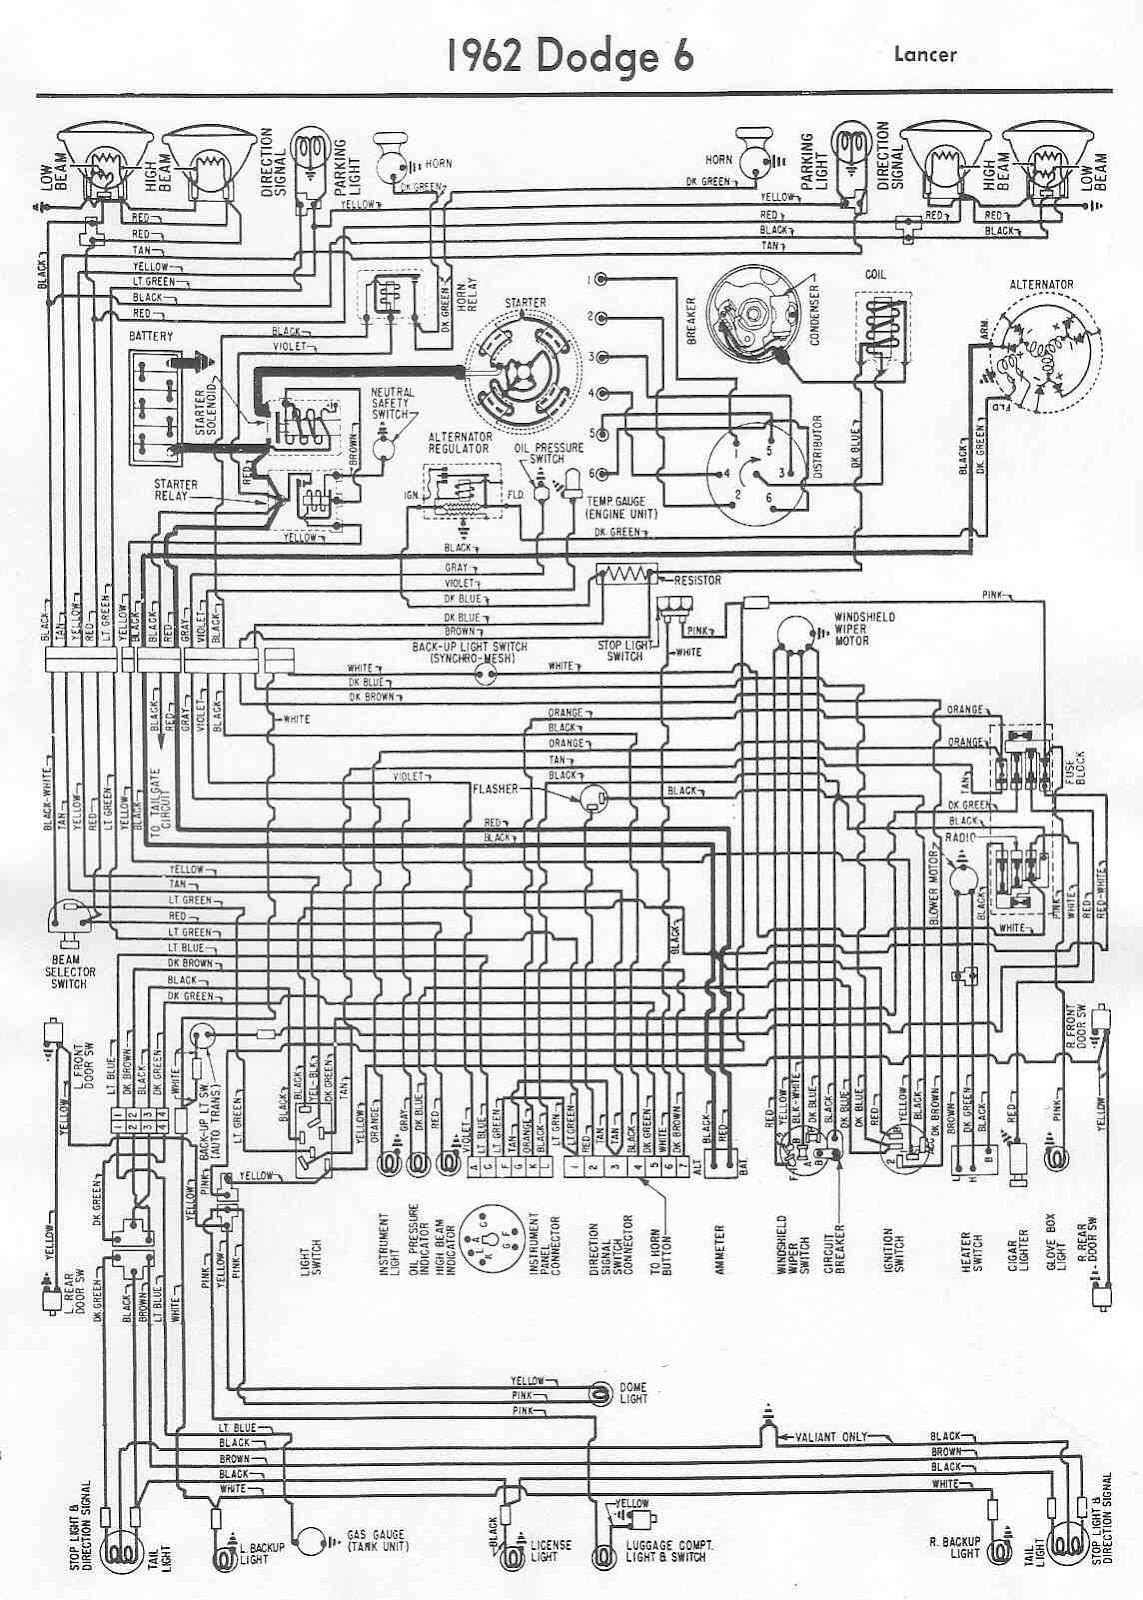 2002 Dodge Ram 1500 Ignition Coil Wiring Diagram Coffing Hoist Nitro Diagrams Get Free Image About